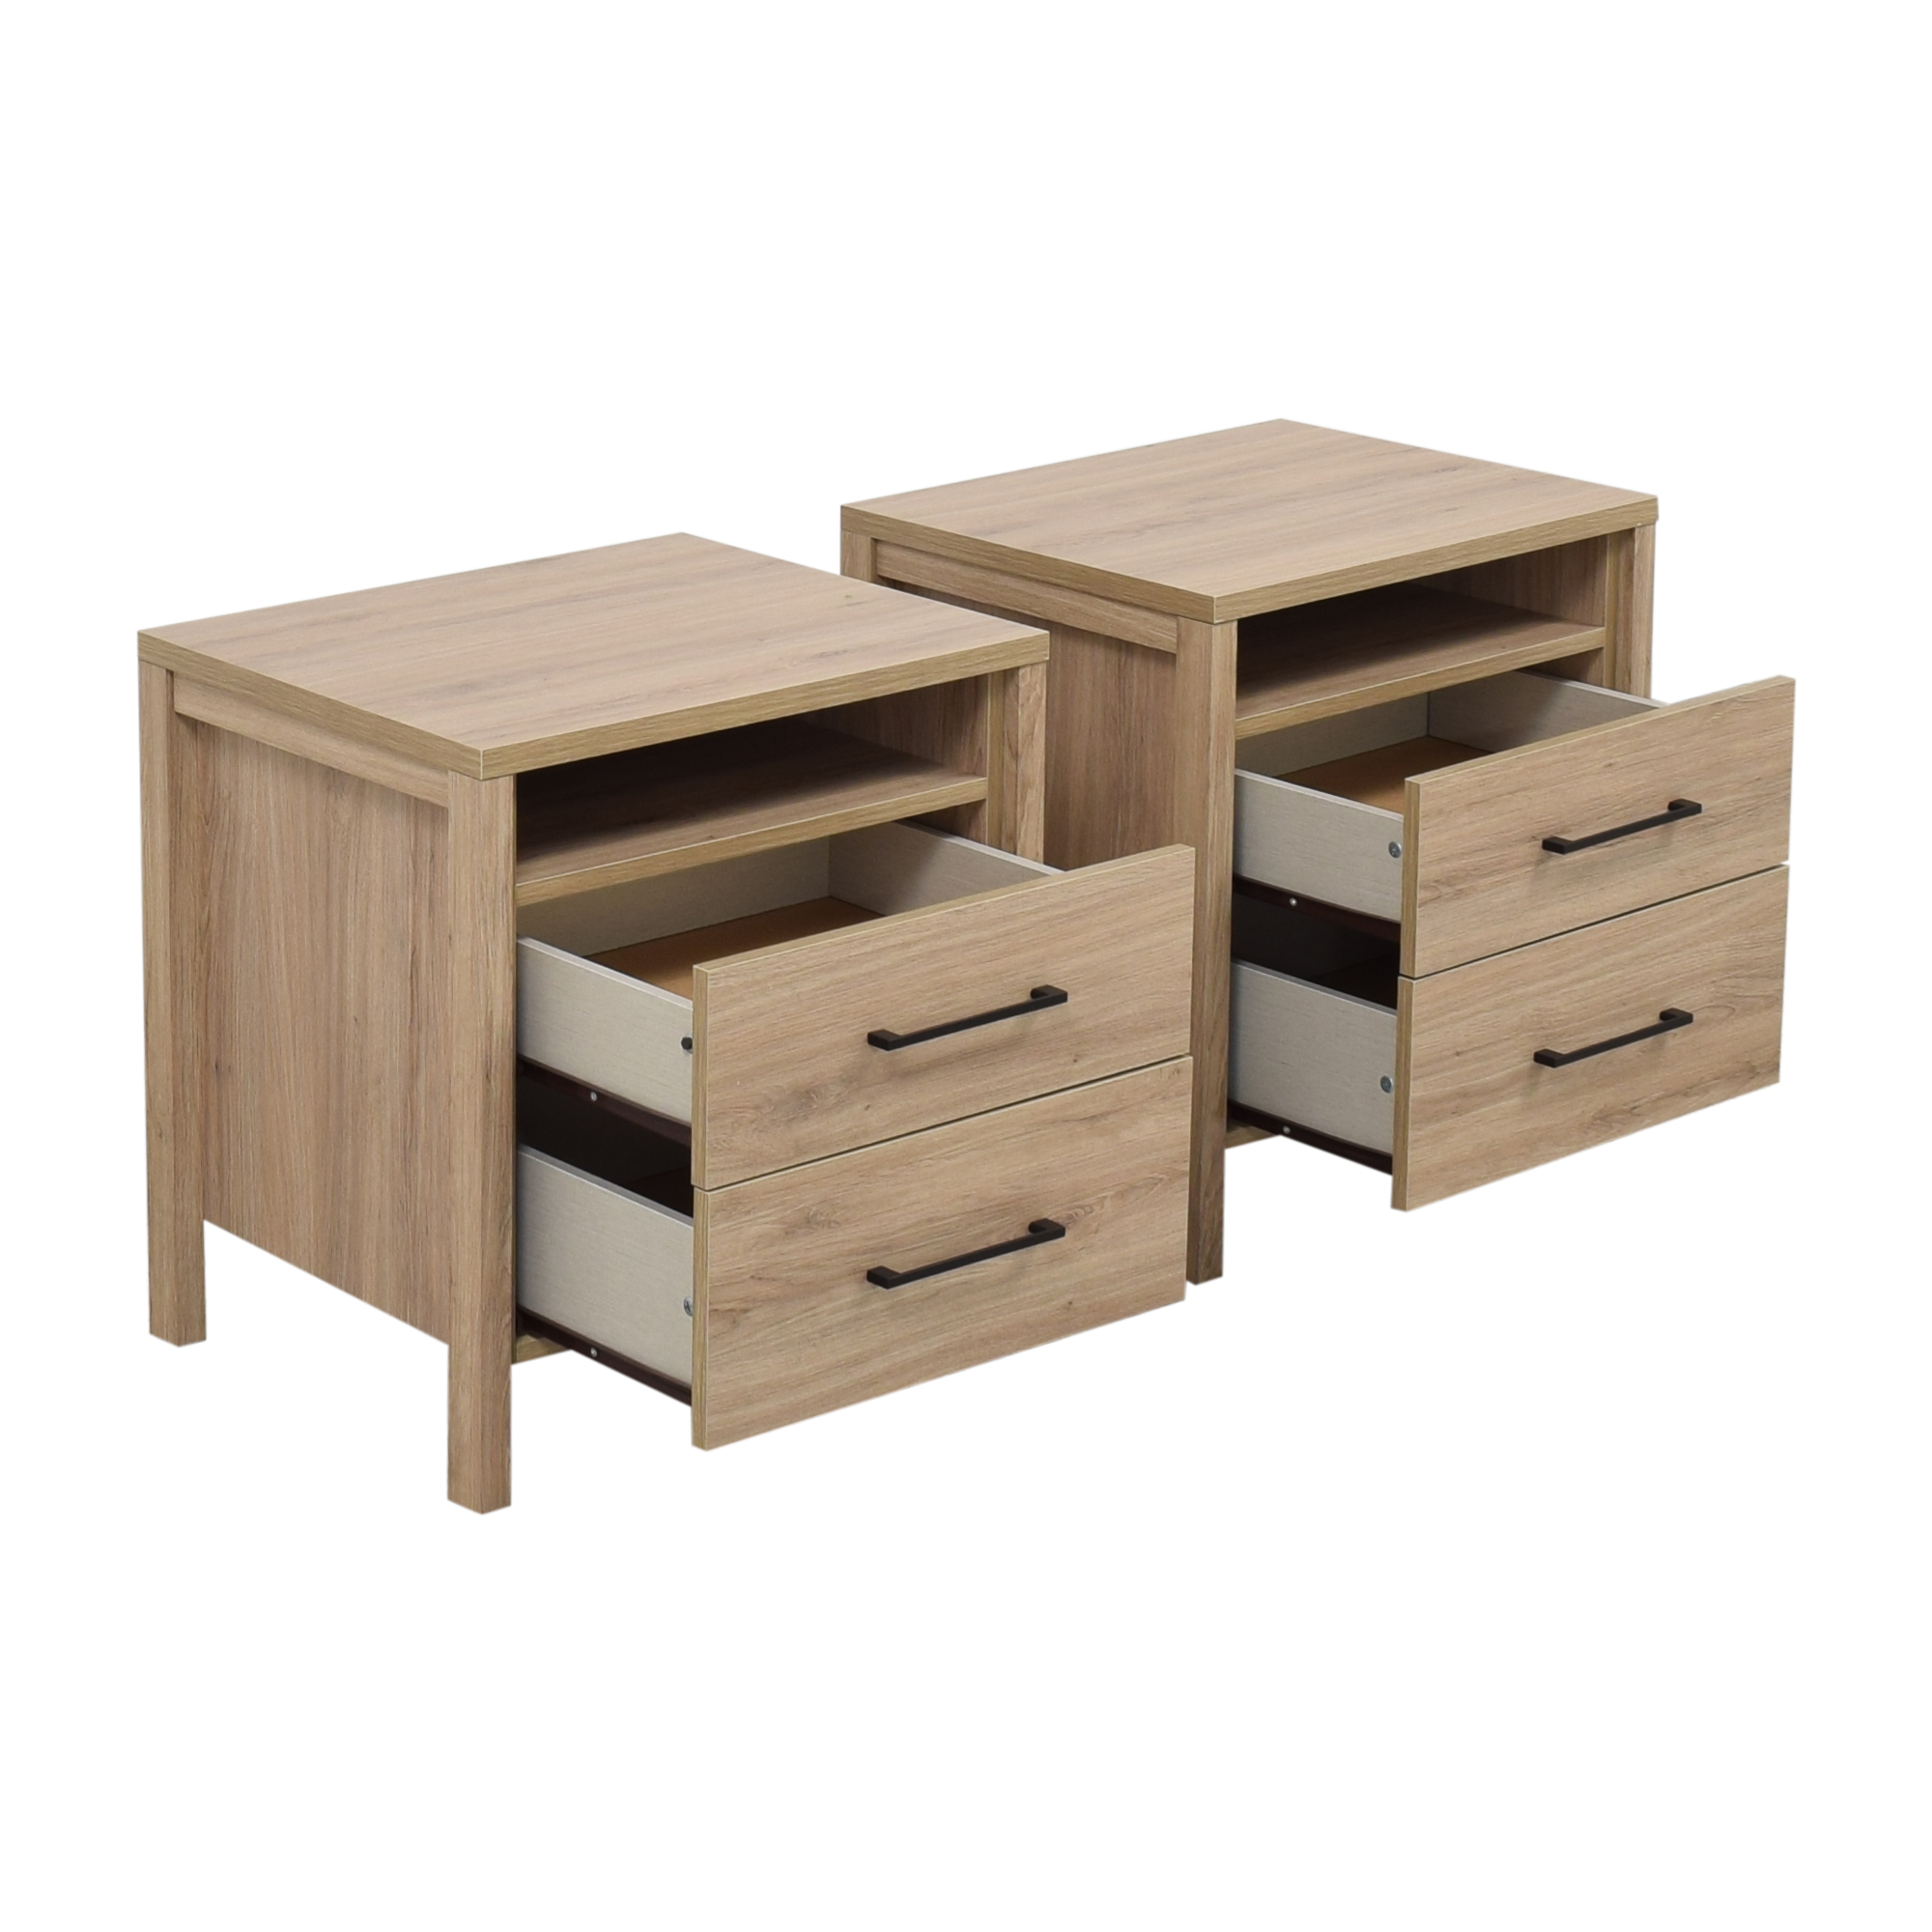 Macy's Gatlin End Table Nightstands / Tables